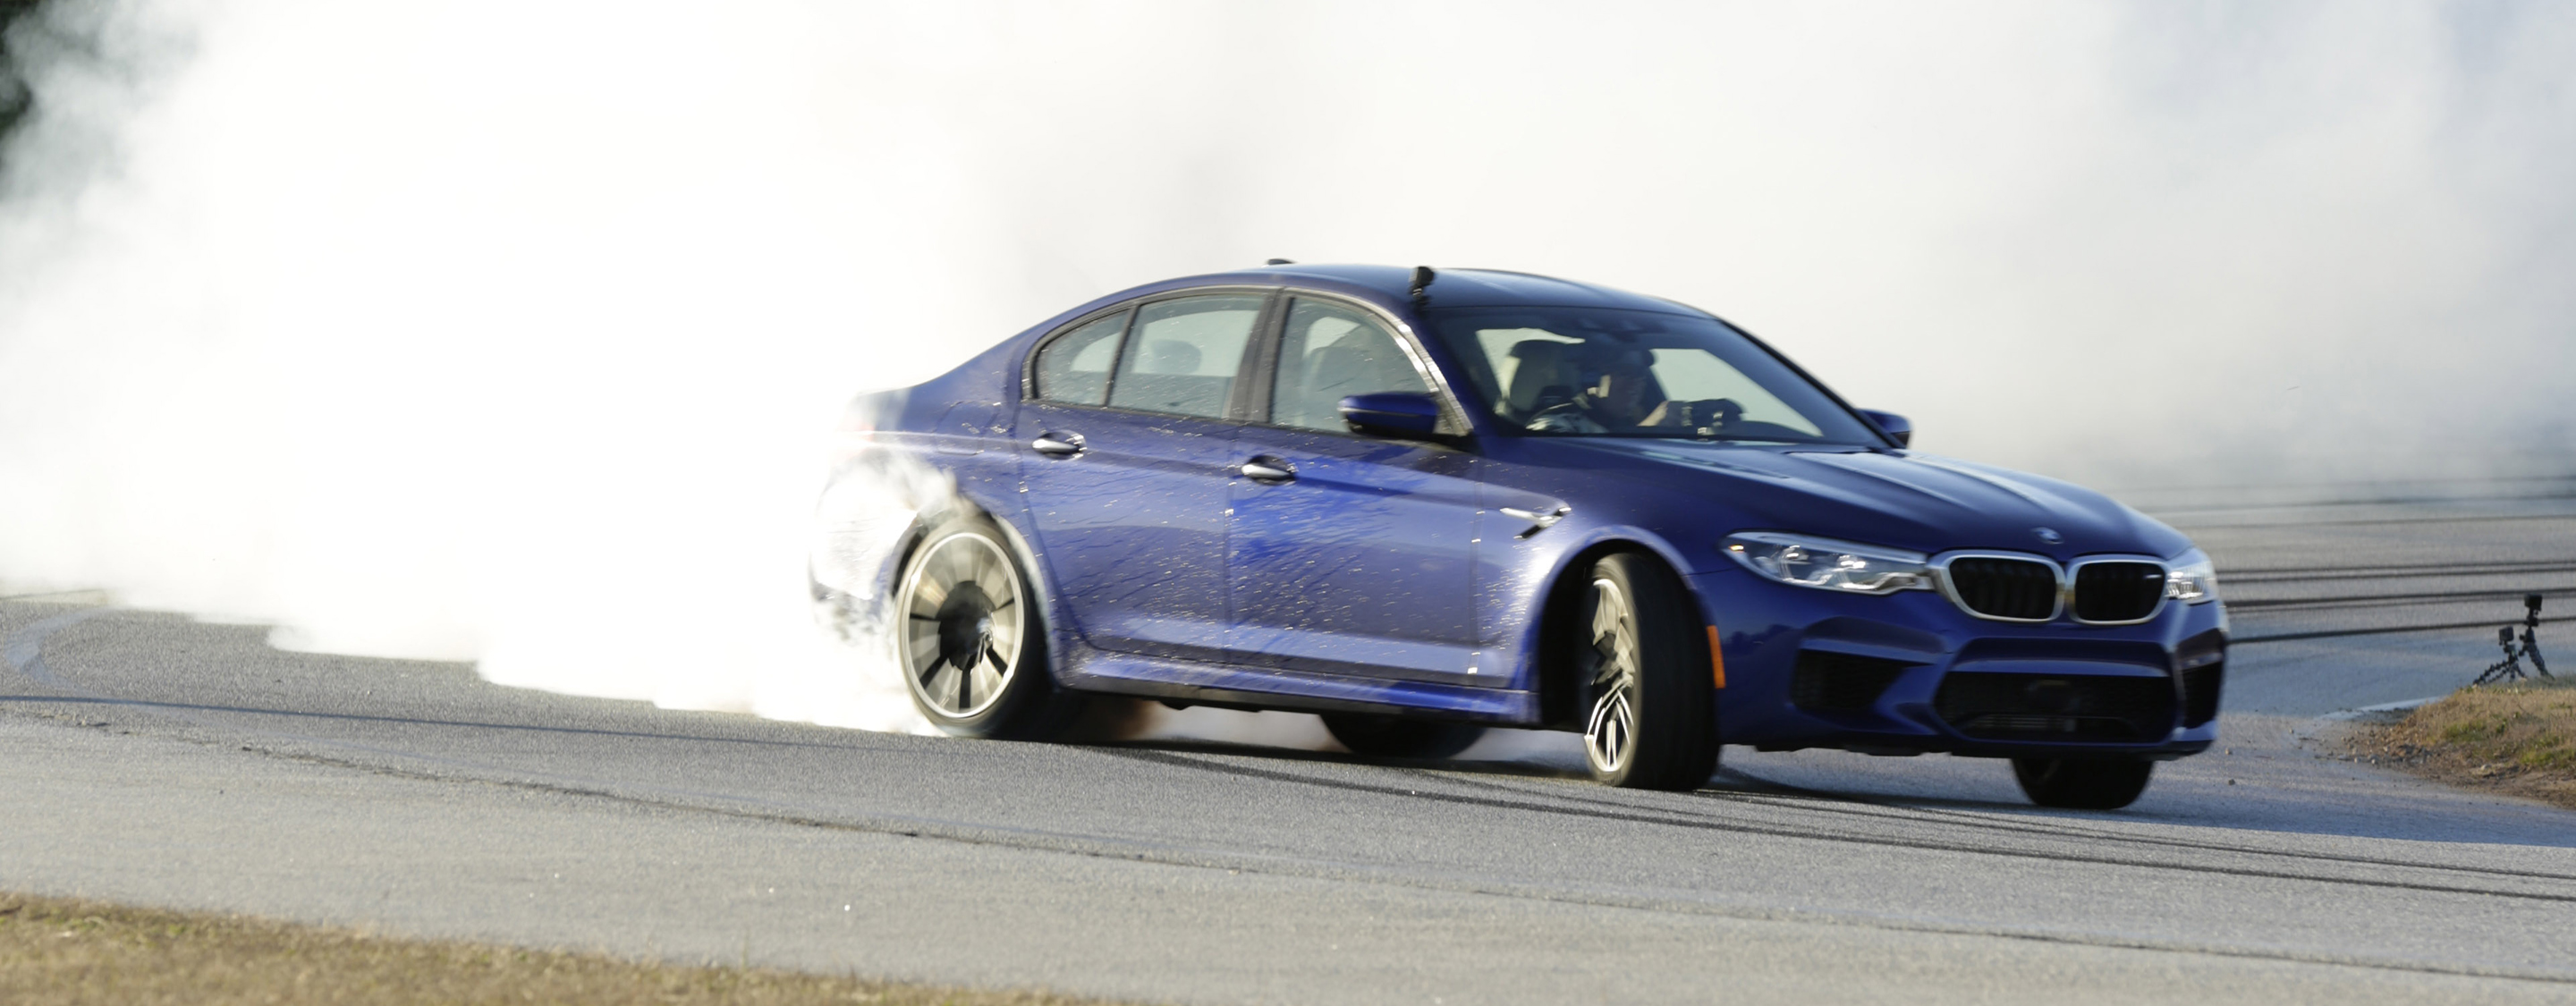 TrackWorthy - Sustained drift of 232.5 Miles in the all-new BMW M5